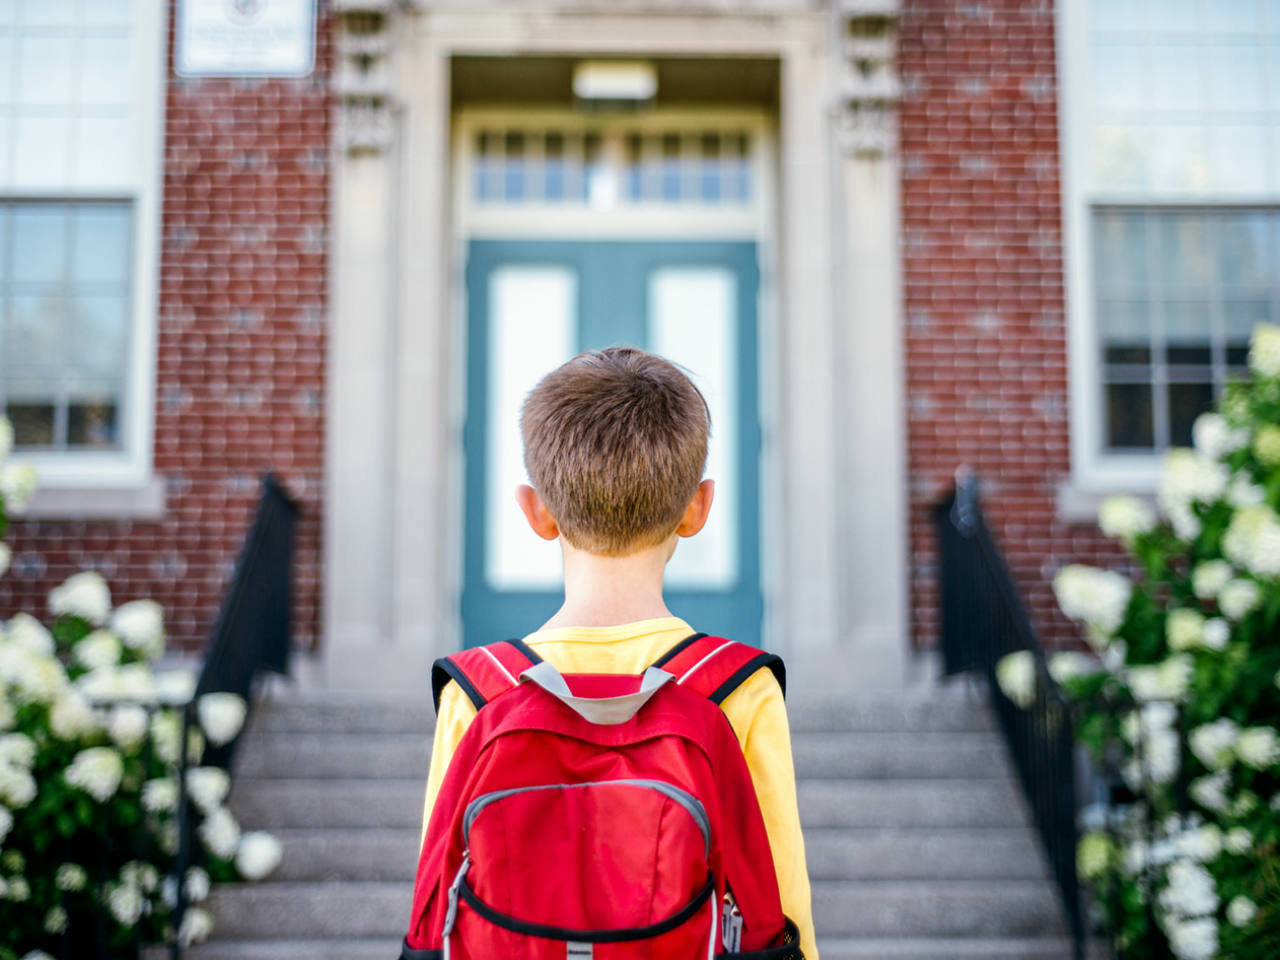 A little boy wearing a backpack standing in front of the school doors